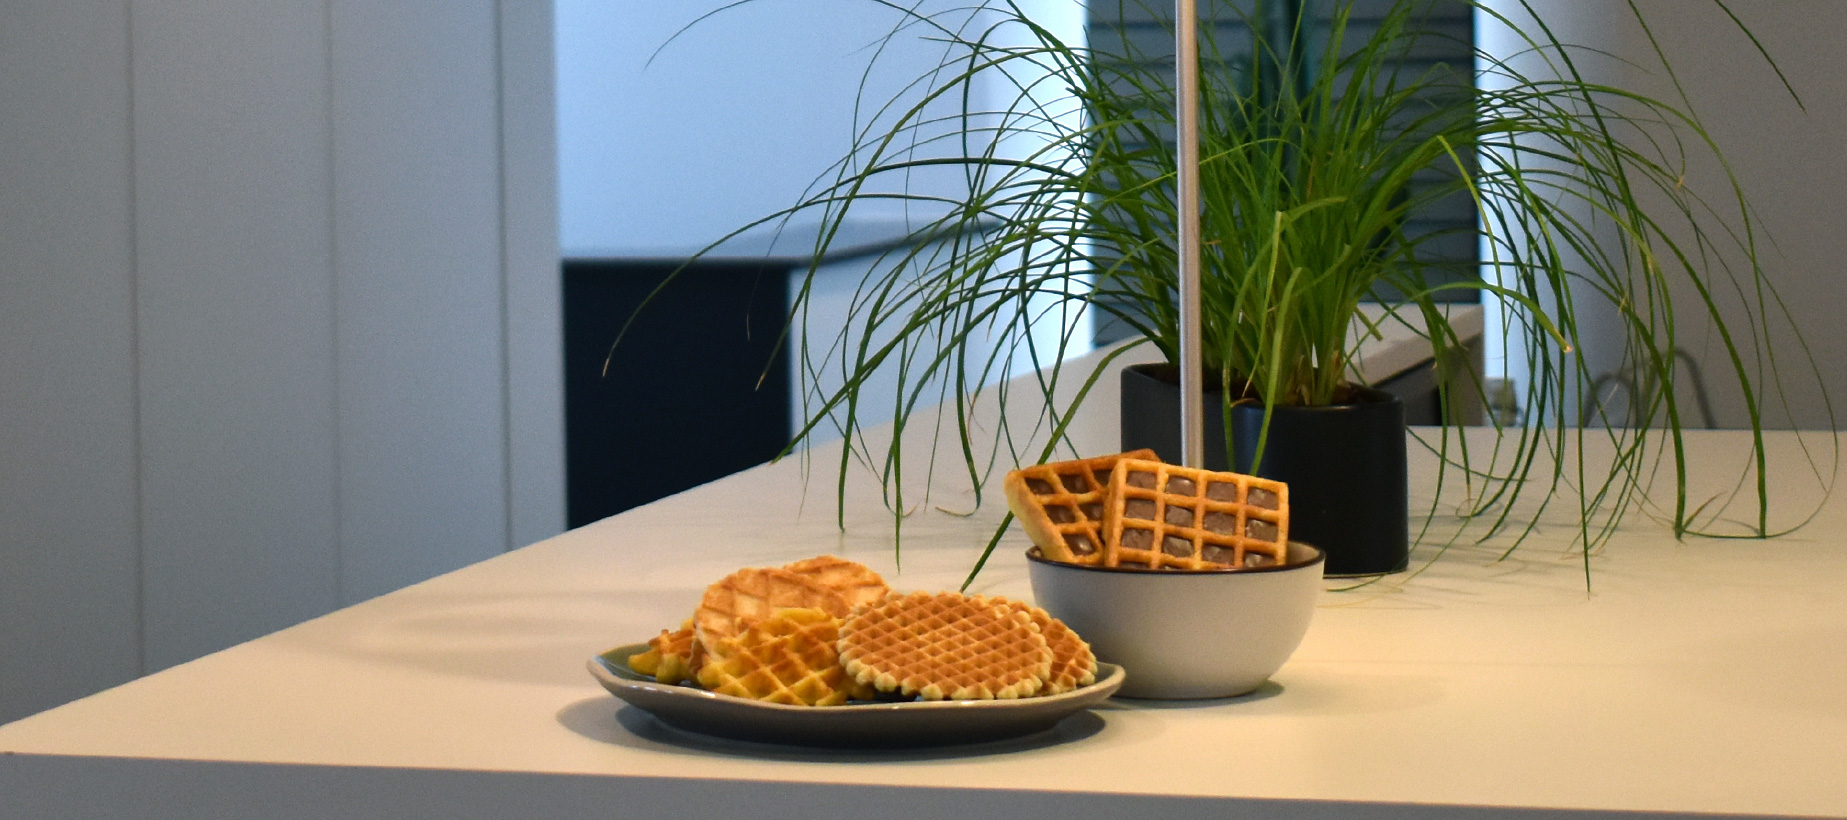 Arwem Food Group is the expert in food trade and tasty waffles